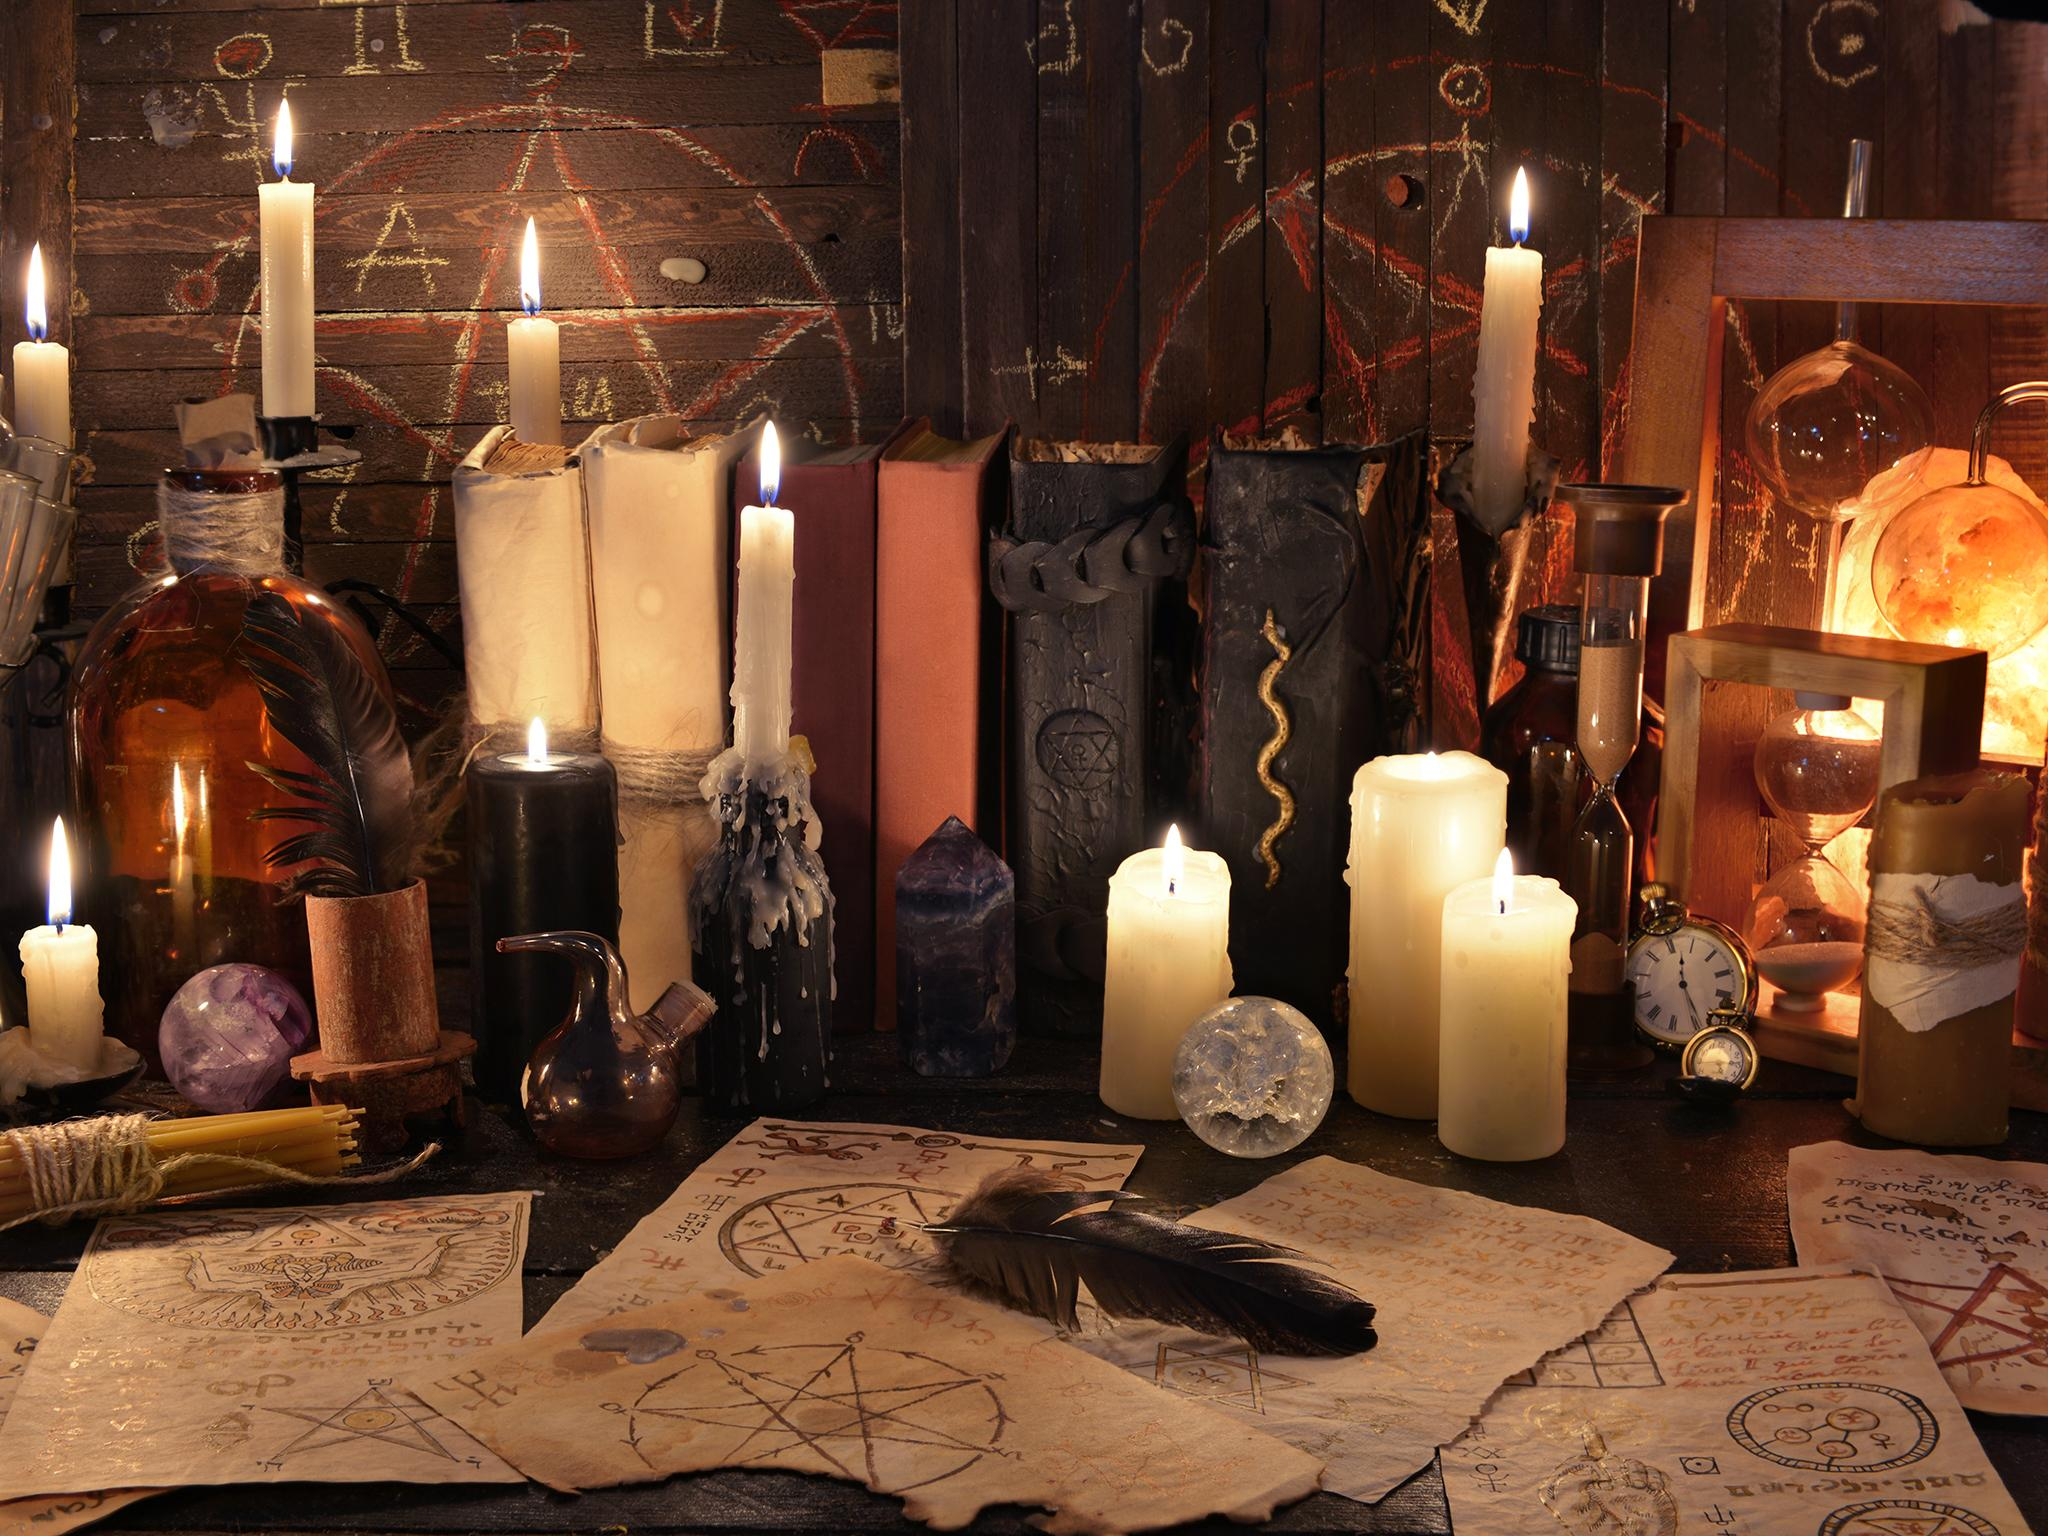 Spiritualism and the Occult facts